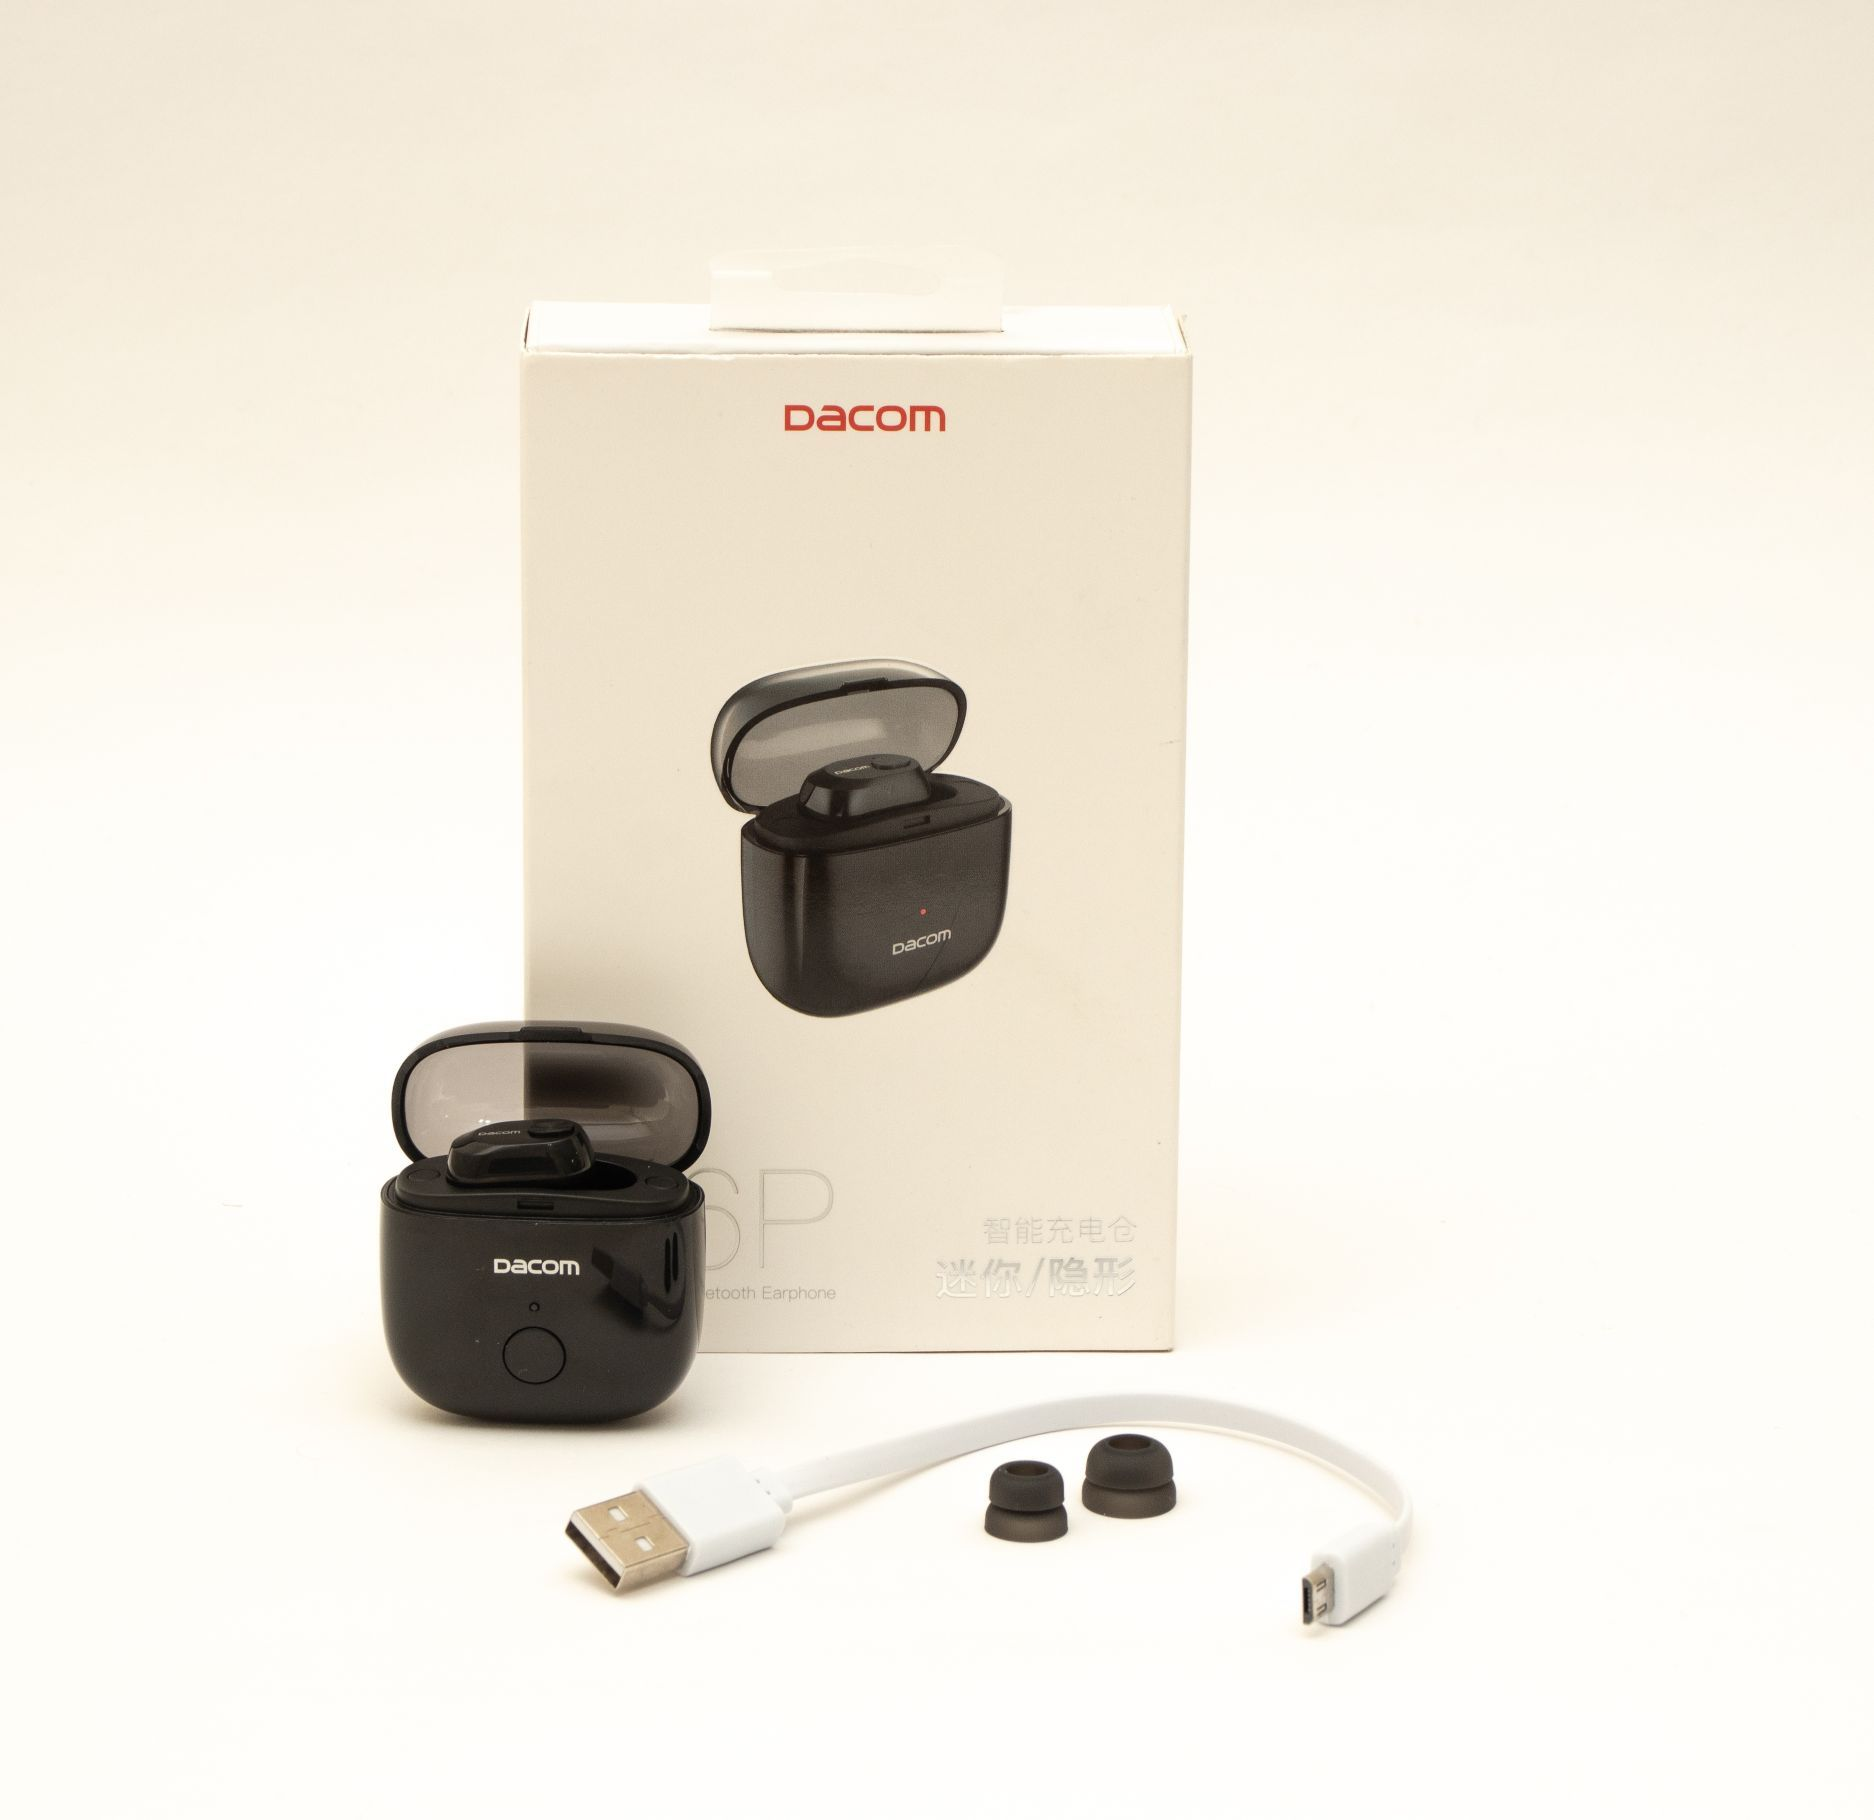 Earbuds Dacom K6p One Ear Black بسعر 520ج بدل من 675ج Phone Accessories Electronic Products Accessories